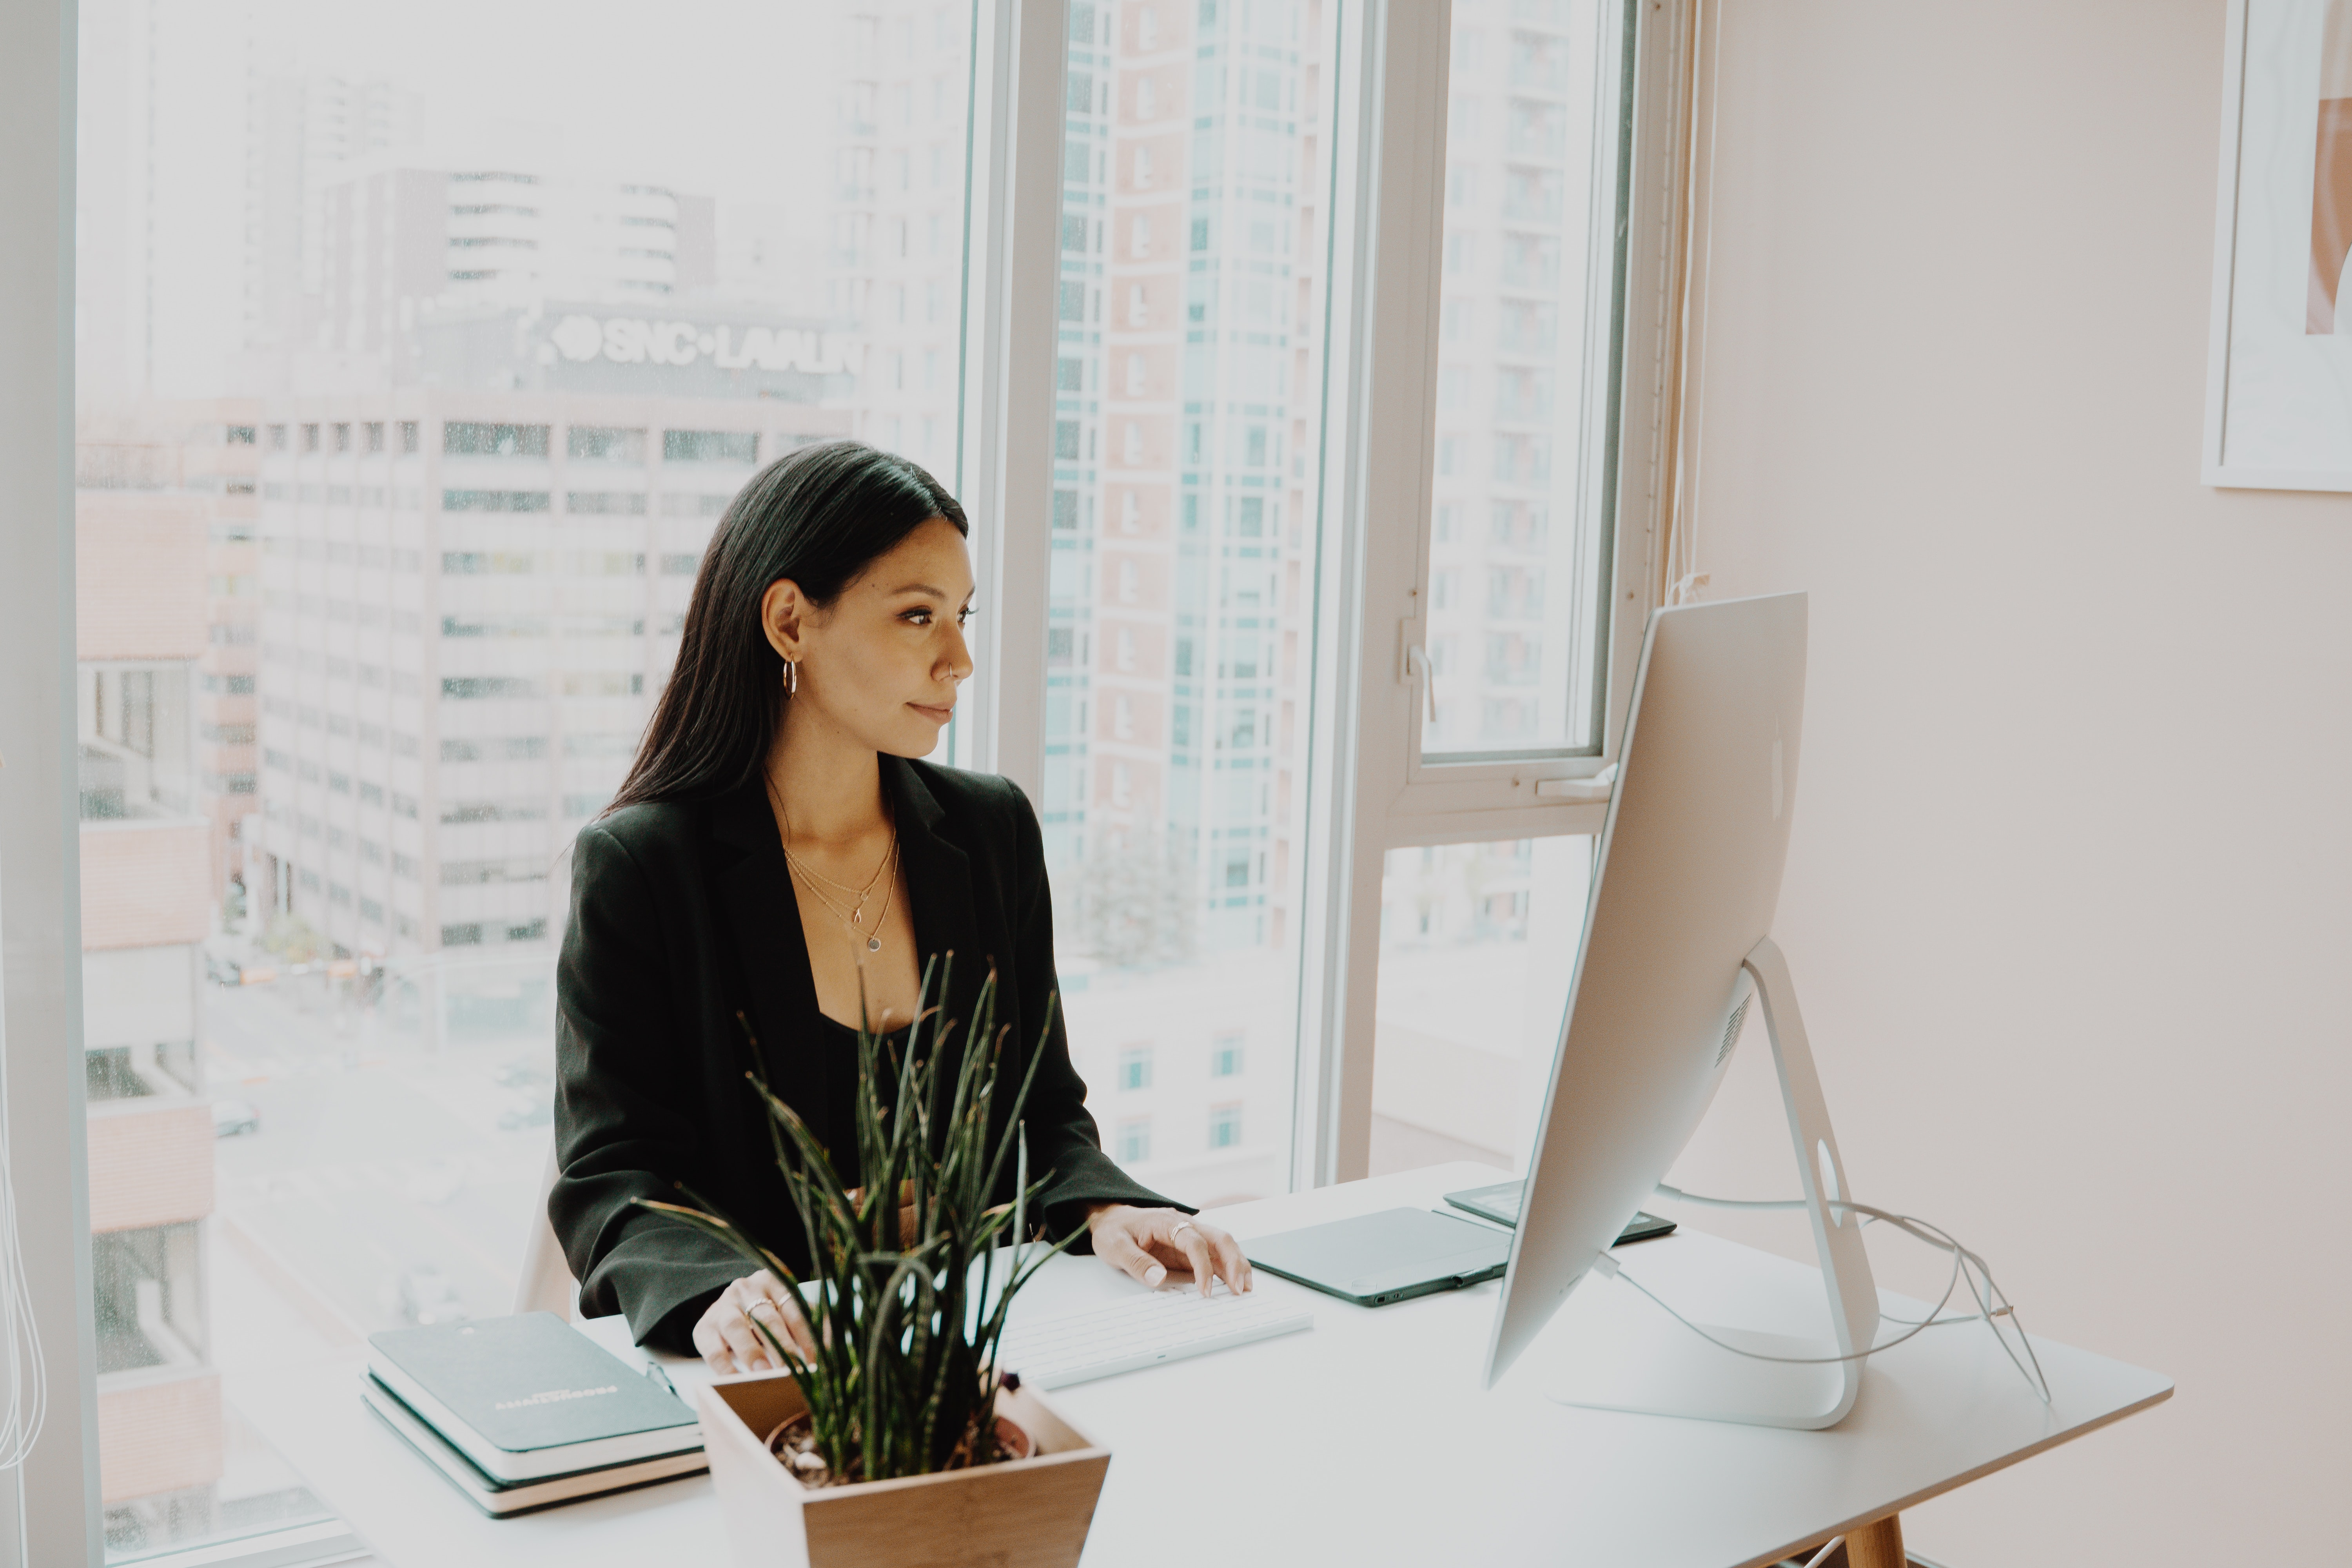 woman sits at a desk with computer with window and city scape through windows behind her